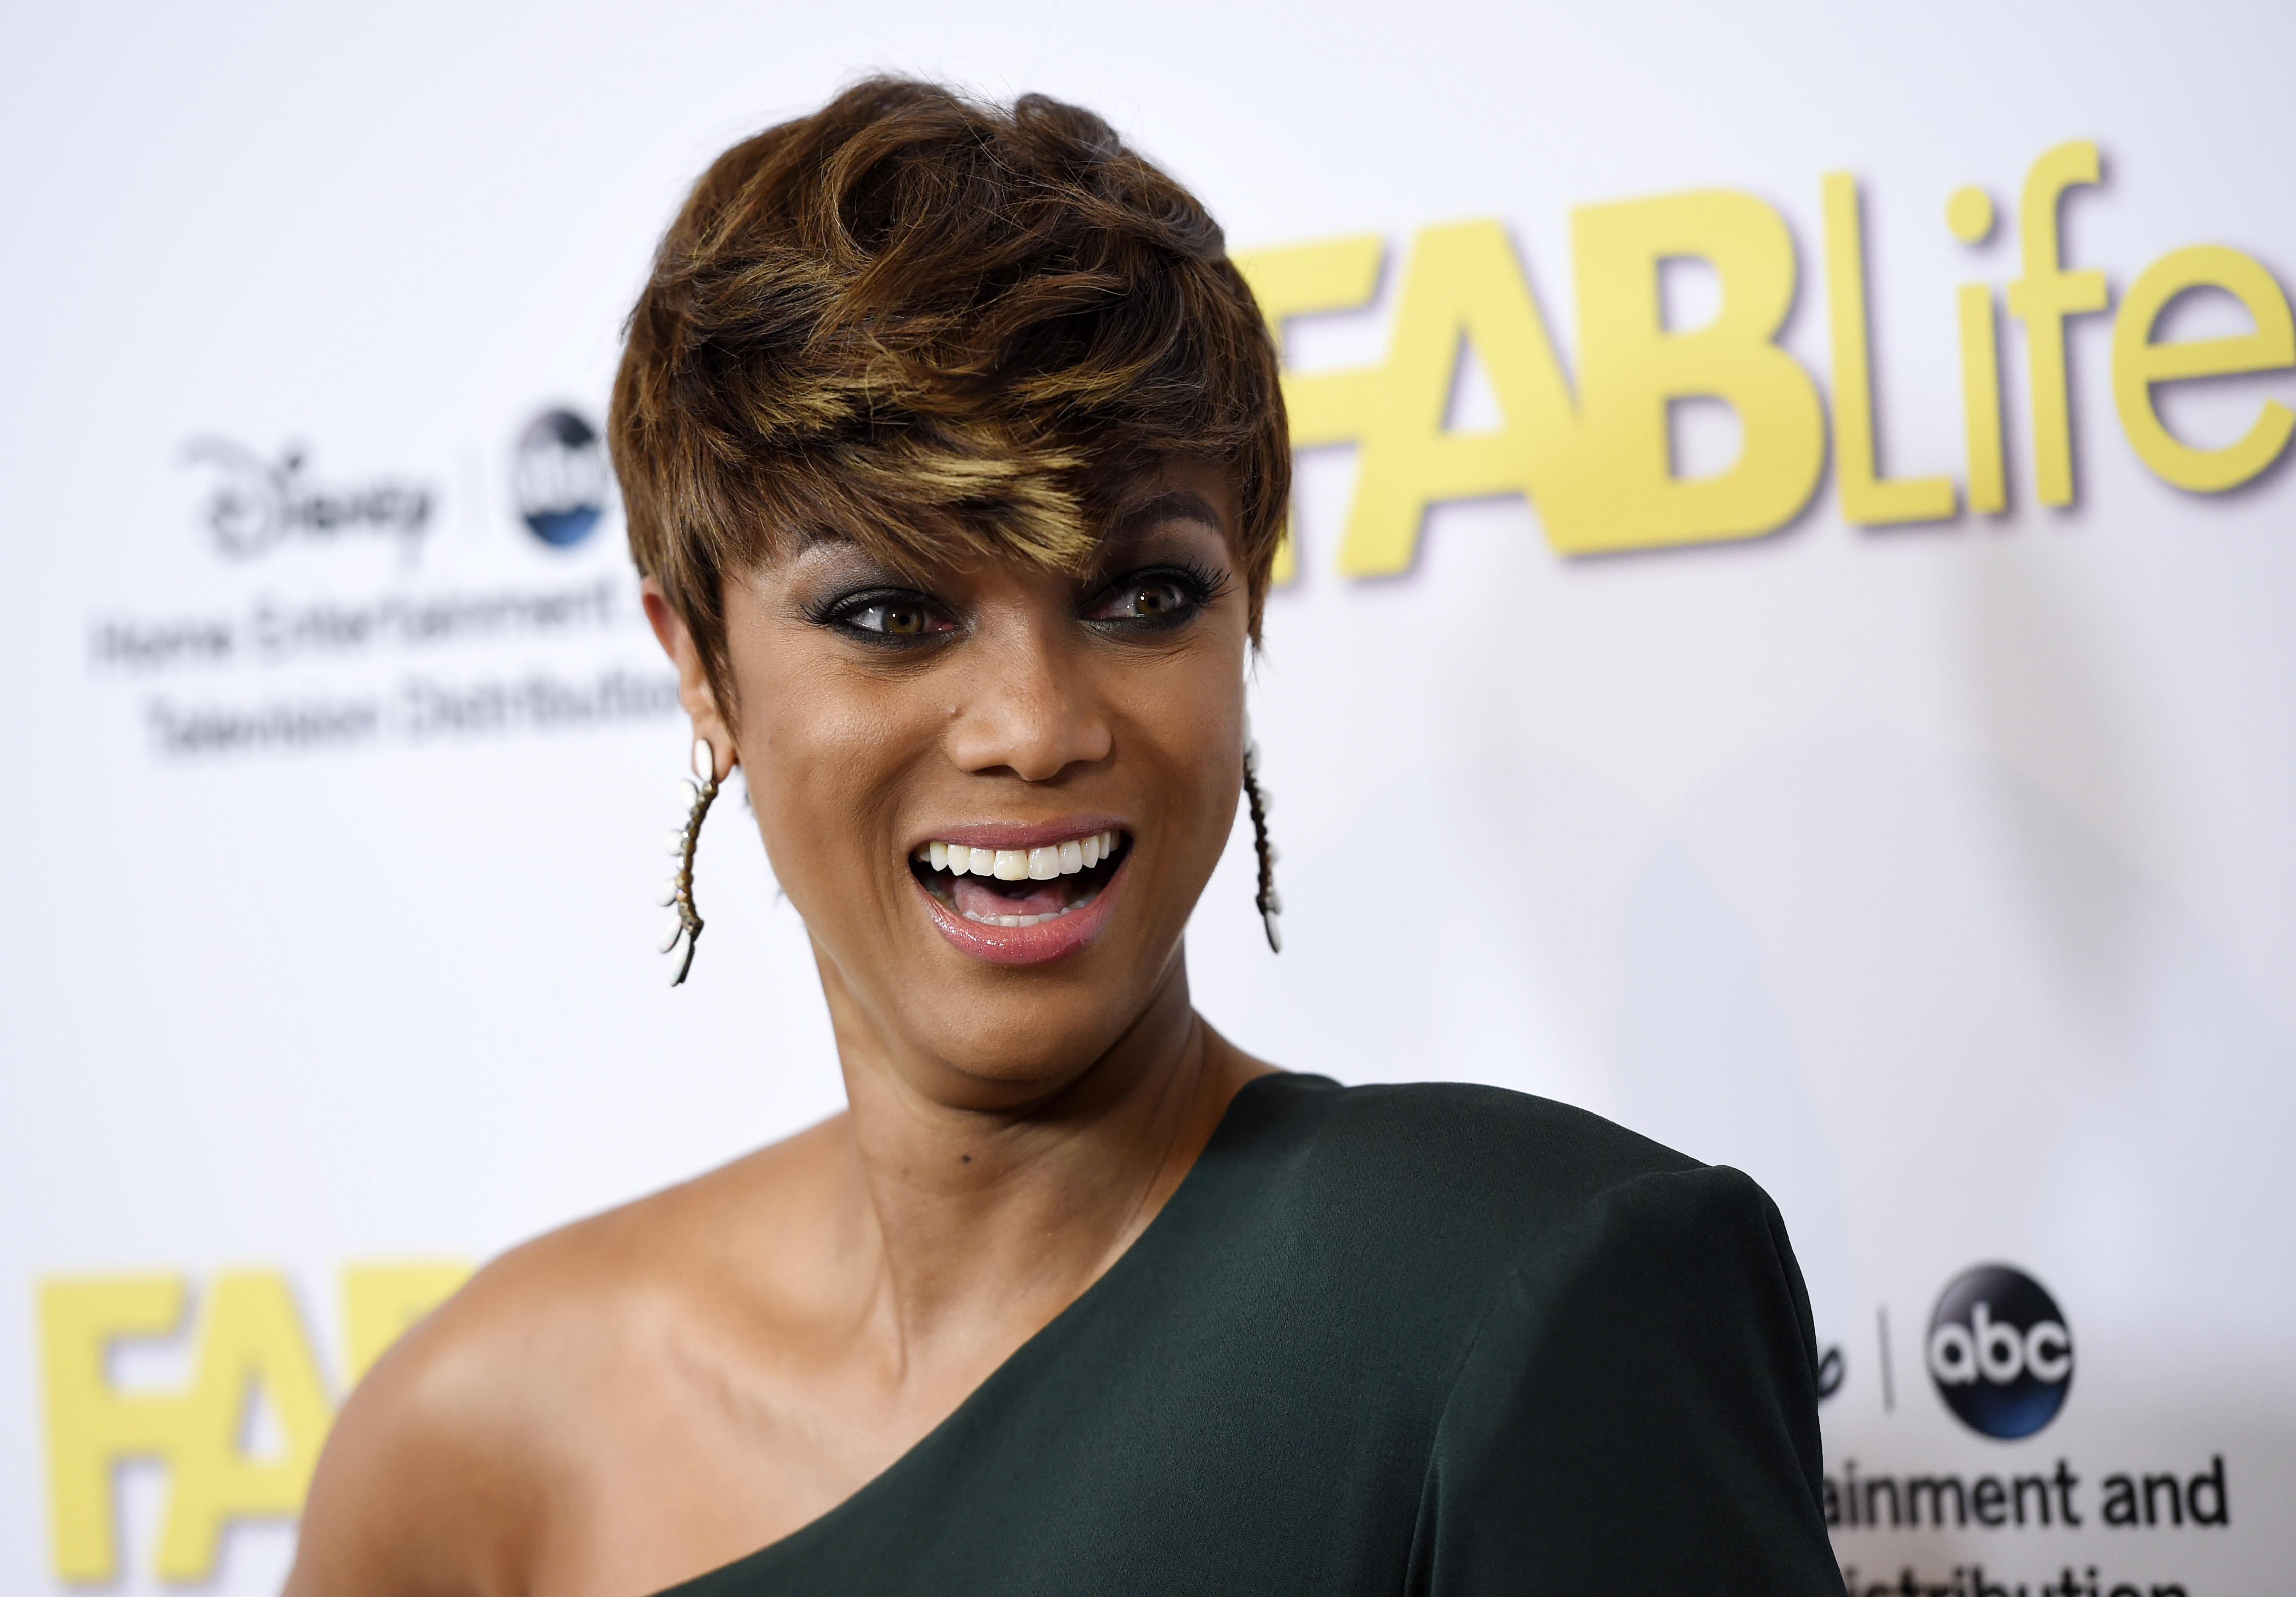 "FILE - In this Aug. 4, 2015 file photo, Tyra Banks poses at the Disney ABC Television Group party during the 2015 Television Critics Association Summer Press Tour at the Beverly Hilton in Beverly Hills, Calif. Banks is ""scaling back"" involvement with her new life-style show, ""FABLife."" Original billed as ""chief stylist"" on the show, which also features four other co-hosts, Banks has made the decision to ""scale back"" her role, the show's publicist said Friday, Nov. 20, 2015. (Photo by Chris Pizzello/Invision/AP, File)"